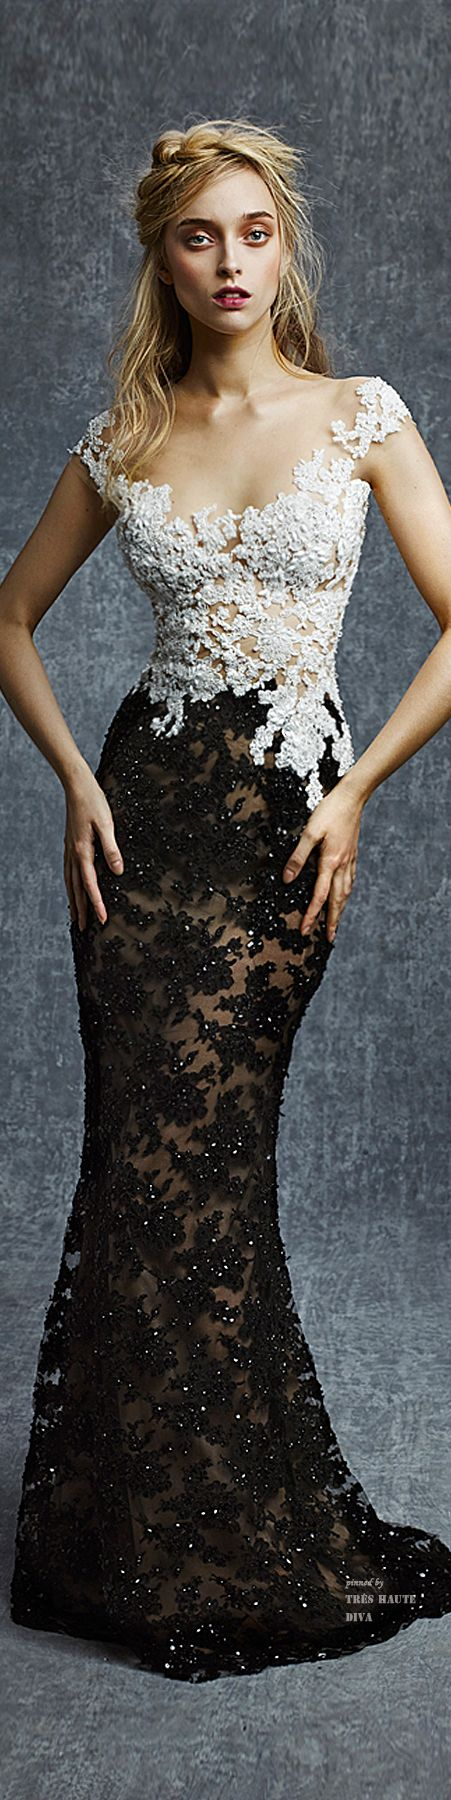 Reem Acra Pre-Fall 2015 prom dress This is not a prom dress. This is like an Oscar status dress. C'mon people